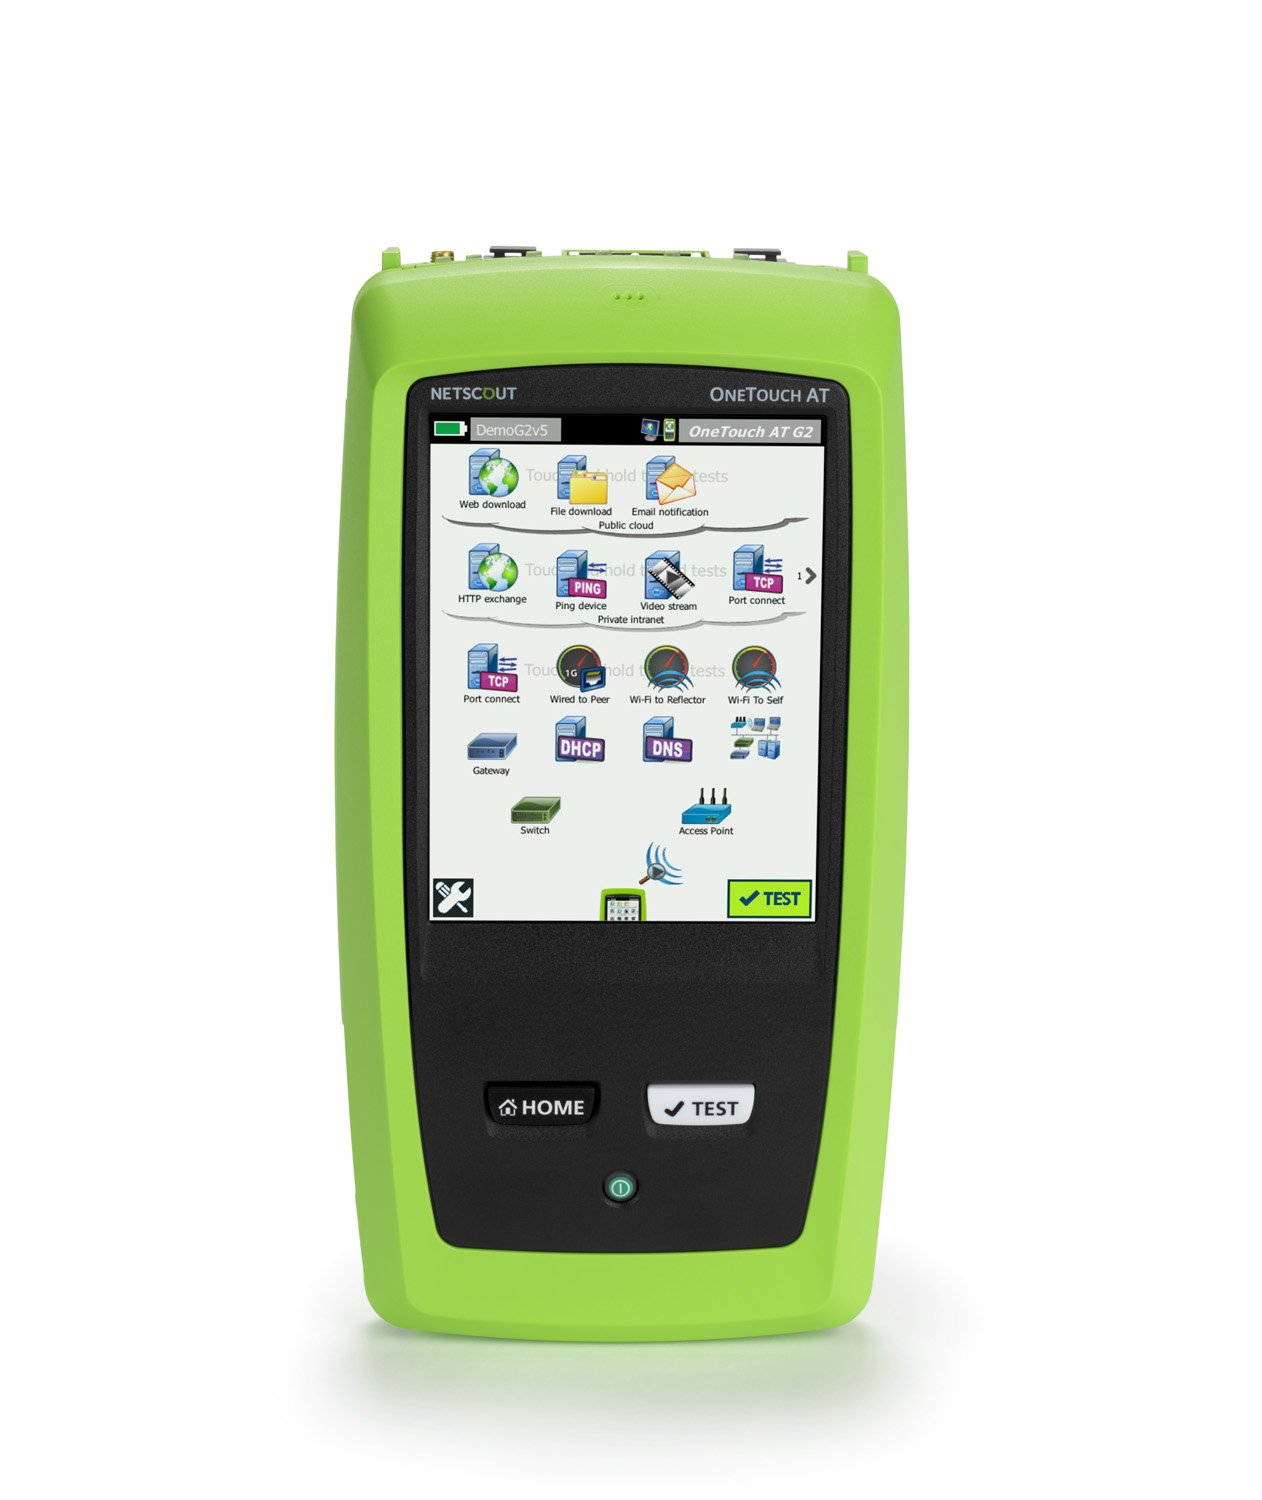 Netscout 1t 3000 Fi Onetouch At Network Tester And Fiber Cloud Core Router 1036 12g 4s Inspection Kit Ethernet Industrial Scientific